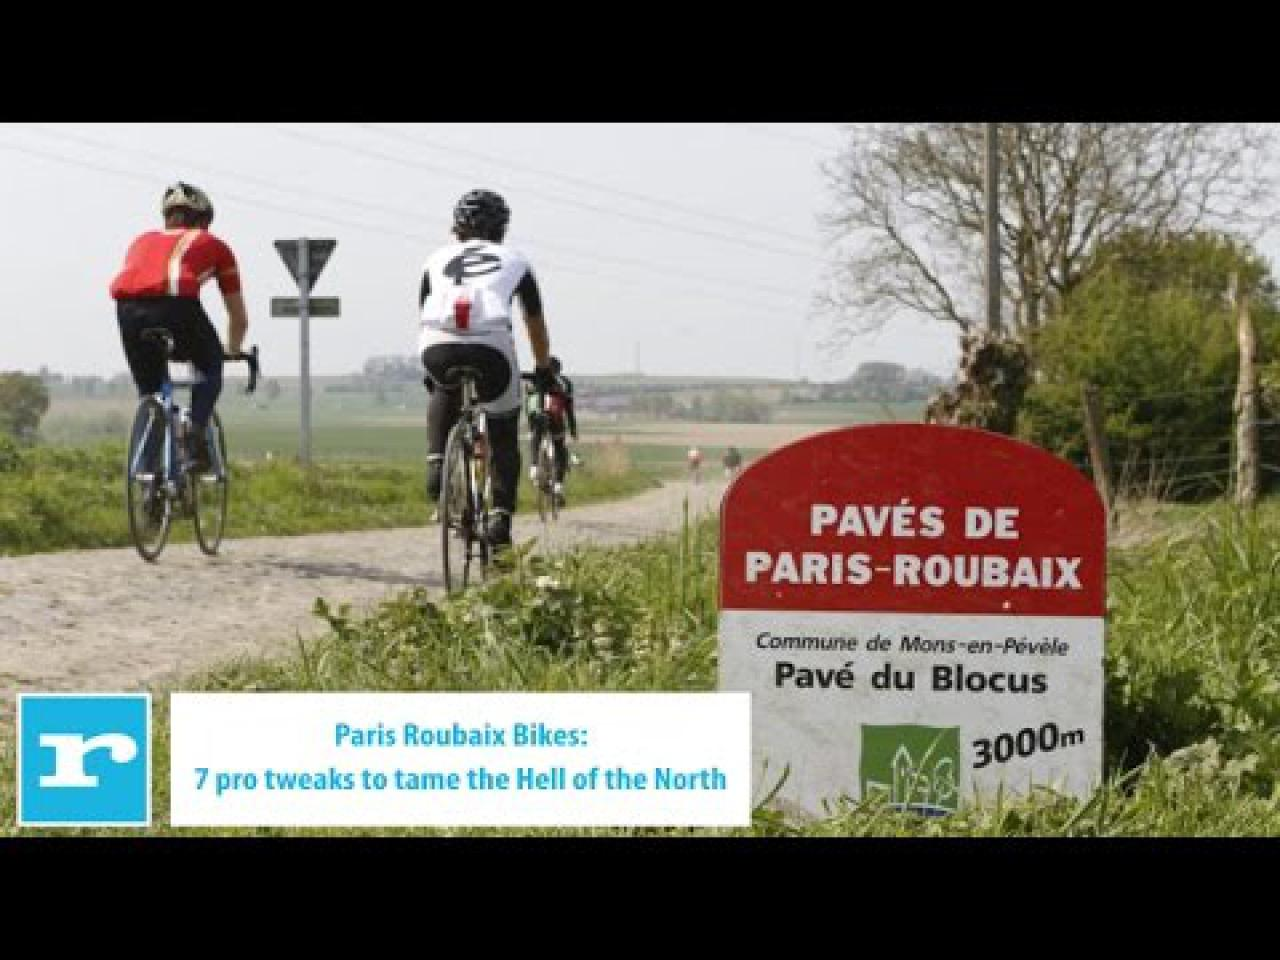 Point P Roubaix Paris Roubaix Bikes 7 Pro Tweaks To Tame The Hell Of The North